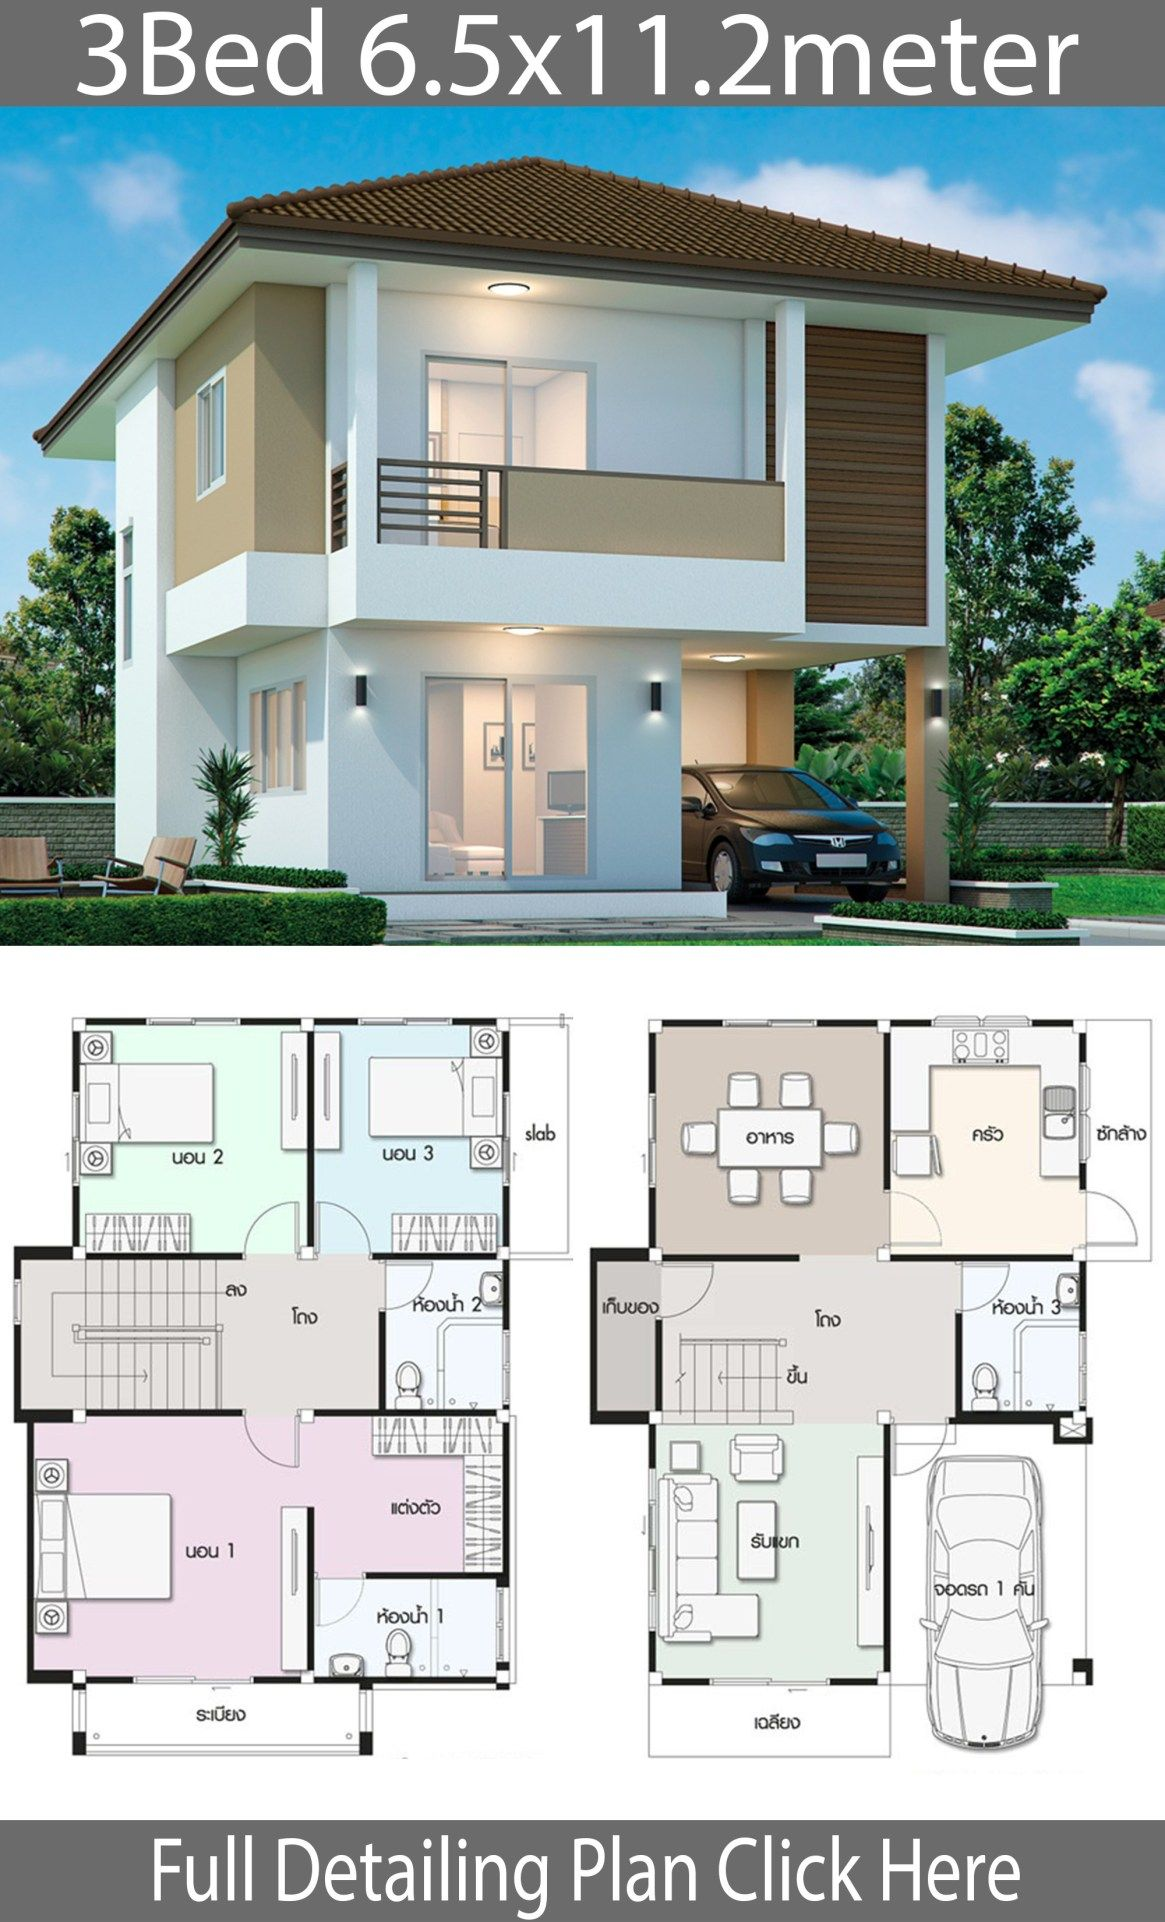 House Design Plan 6 5x11 2m With 3 Bedrooms Home Design With Plansearch House Plans Mansion House Front Design House Designs Exterior